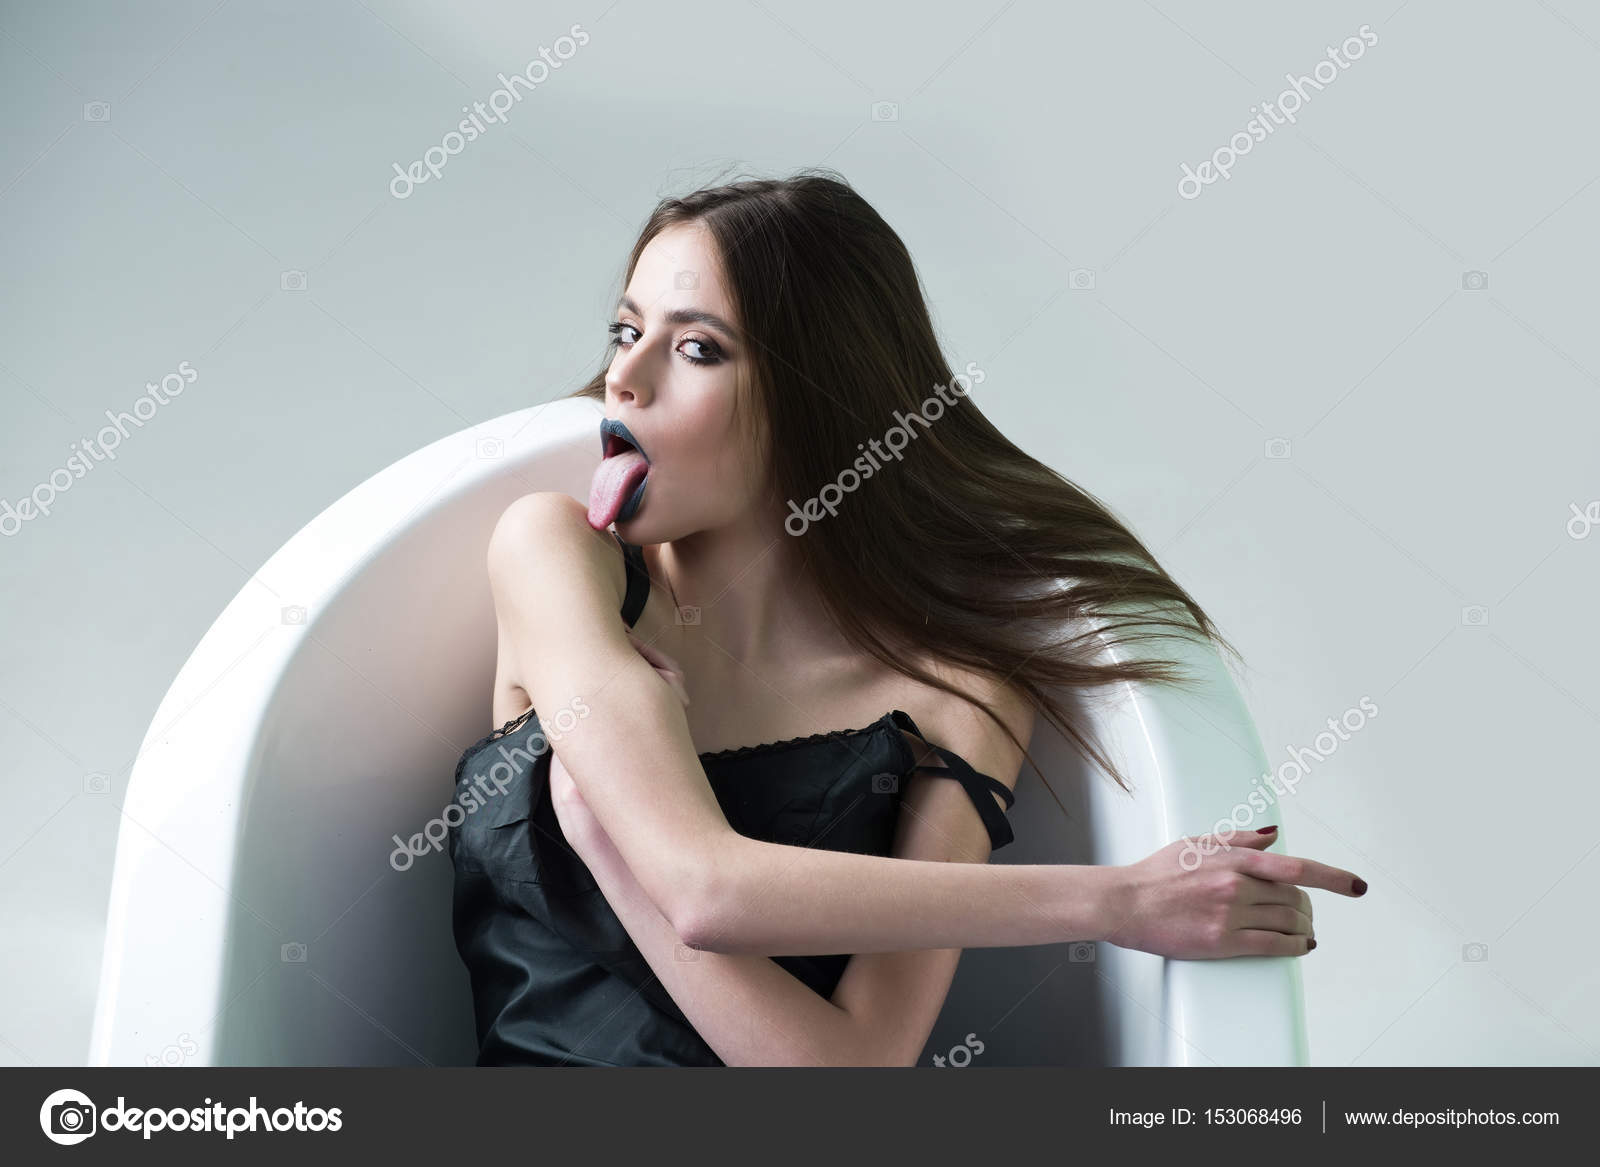 Sexi Girl In Bathroom. Y Woman In Dress With Black Lipstick In Bath Stock Photo